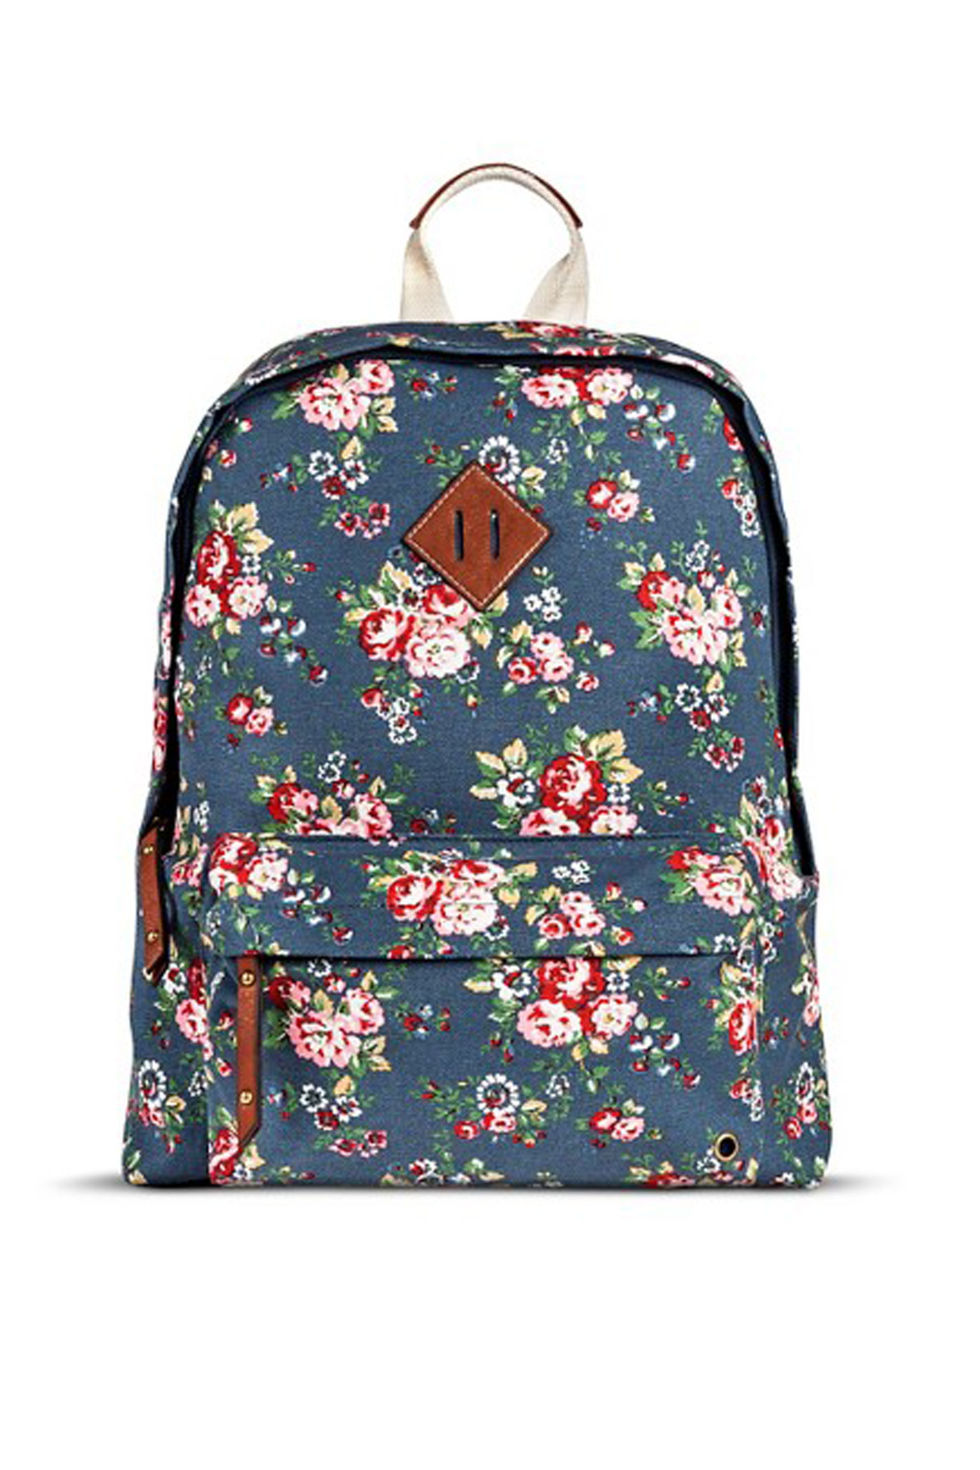 Cool Backpacks For Middle School Girls Crazy Backpacks